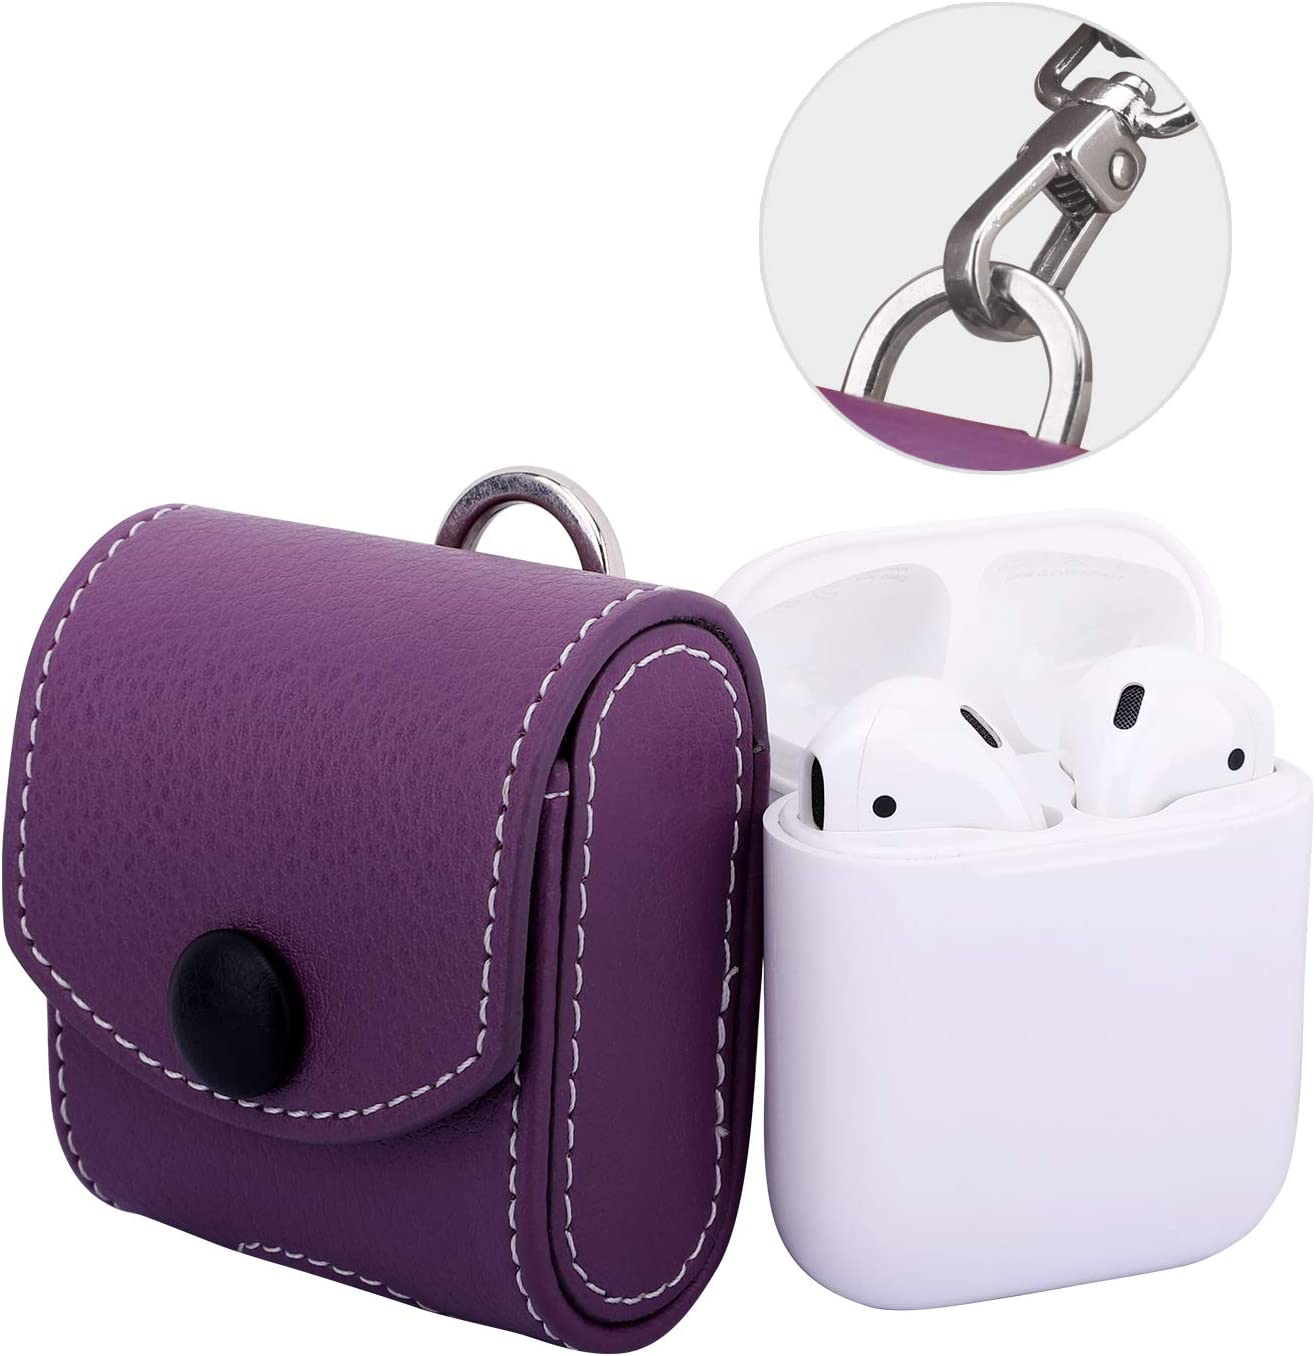 MoKo Case Fit AirPods 1/AirPods 2, Magnetic Snap Closure Protective Cover Carrying Pouch Pocket, with Holding Strap, for AirPods 1 & AirPods 2 Charging Case - Purple